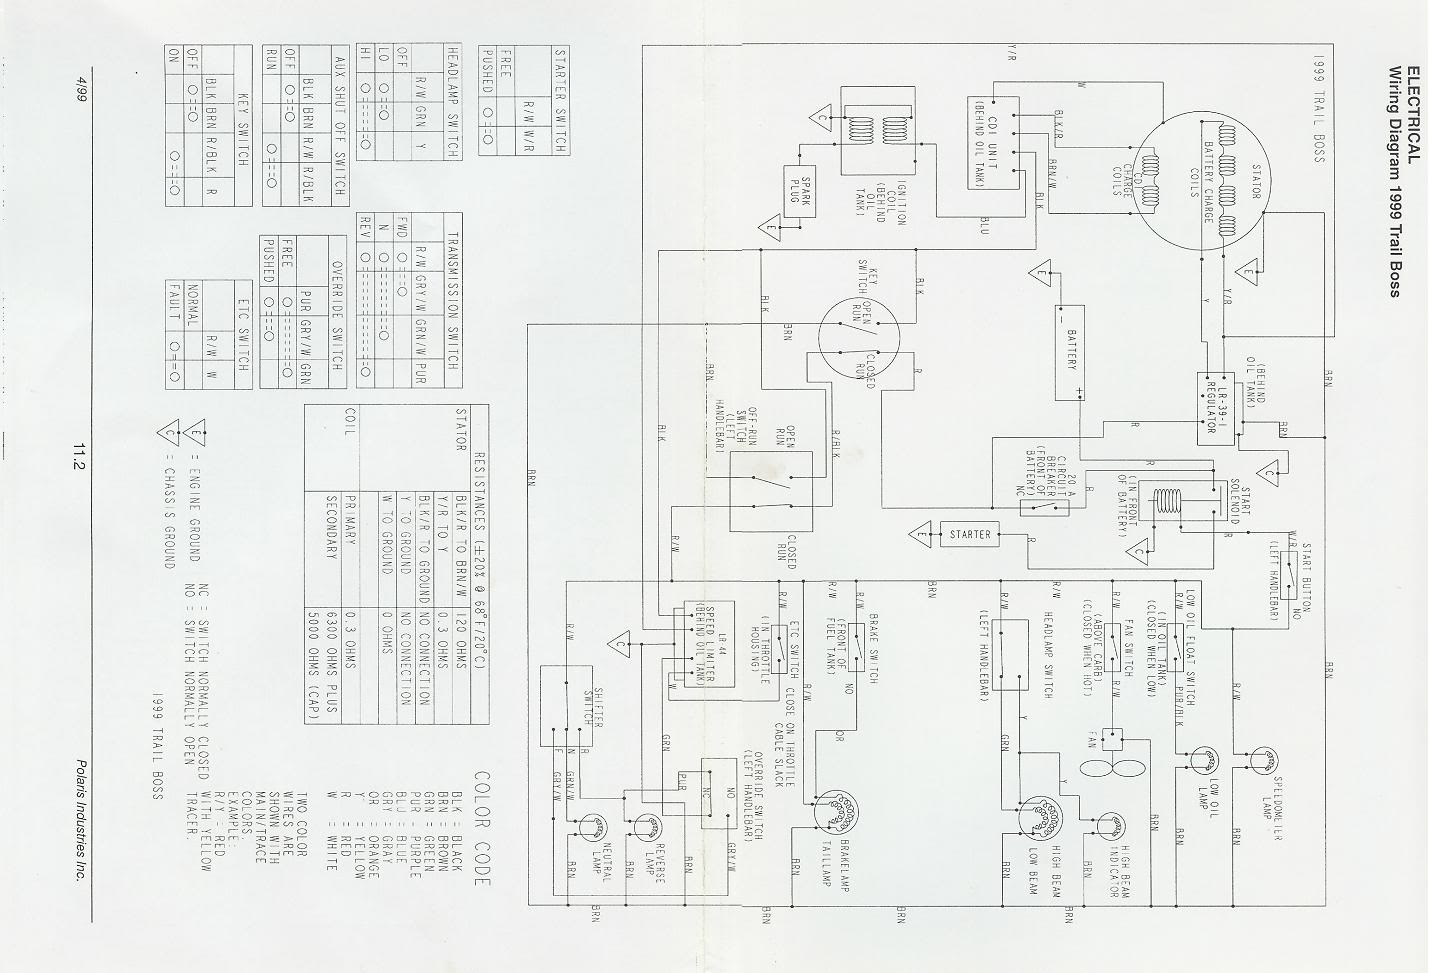 1991 polaris trail boss 250 wiring diagram